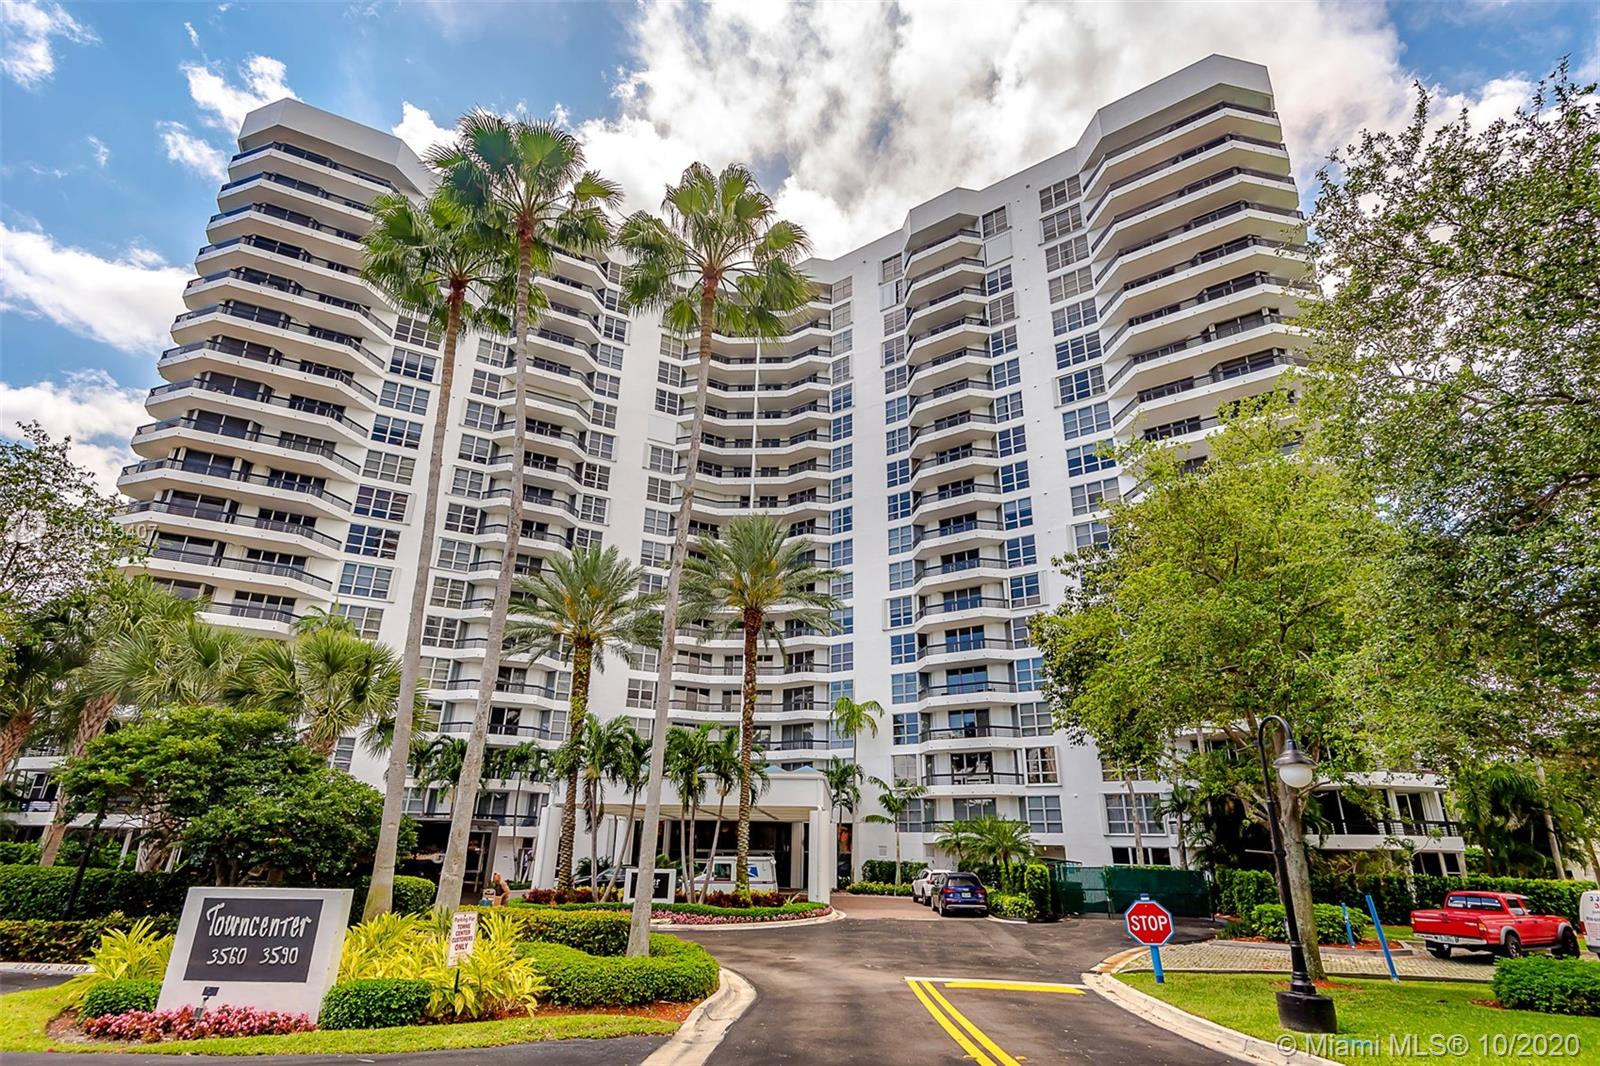 Mystic Pointe Tower 300 #1212 - 3600 Mystic Pointe Dr #1212, Aventura, FL 33180